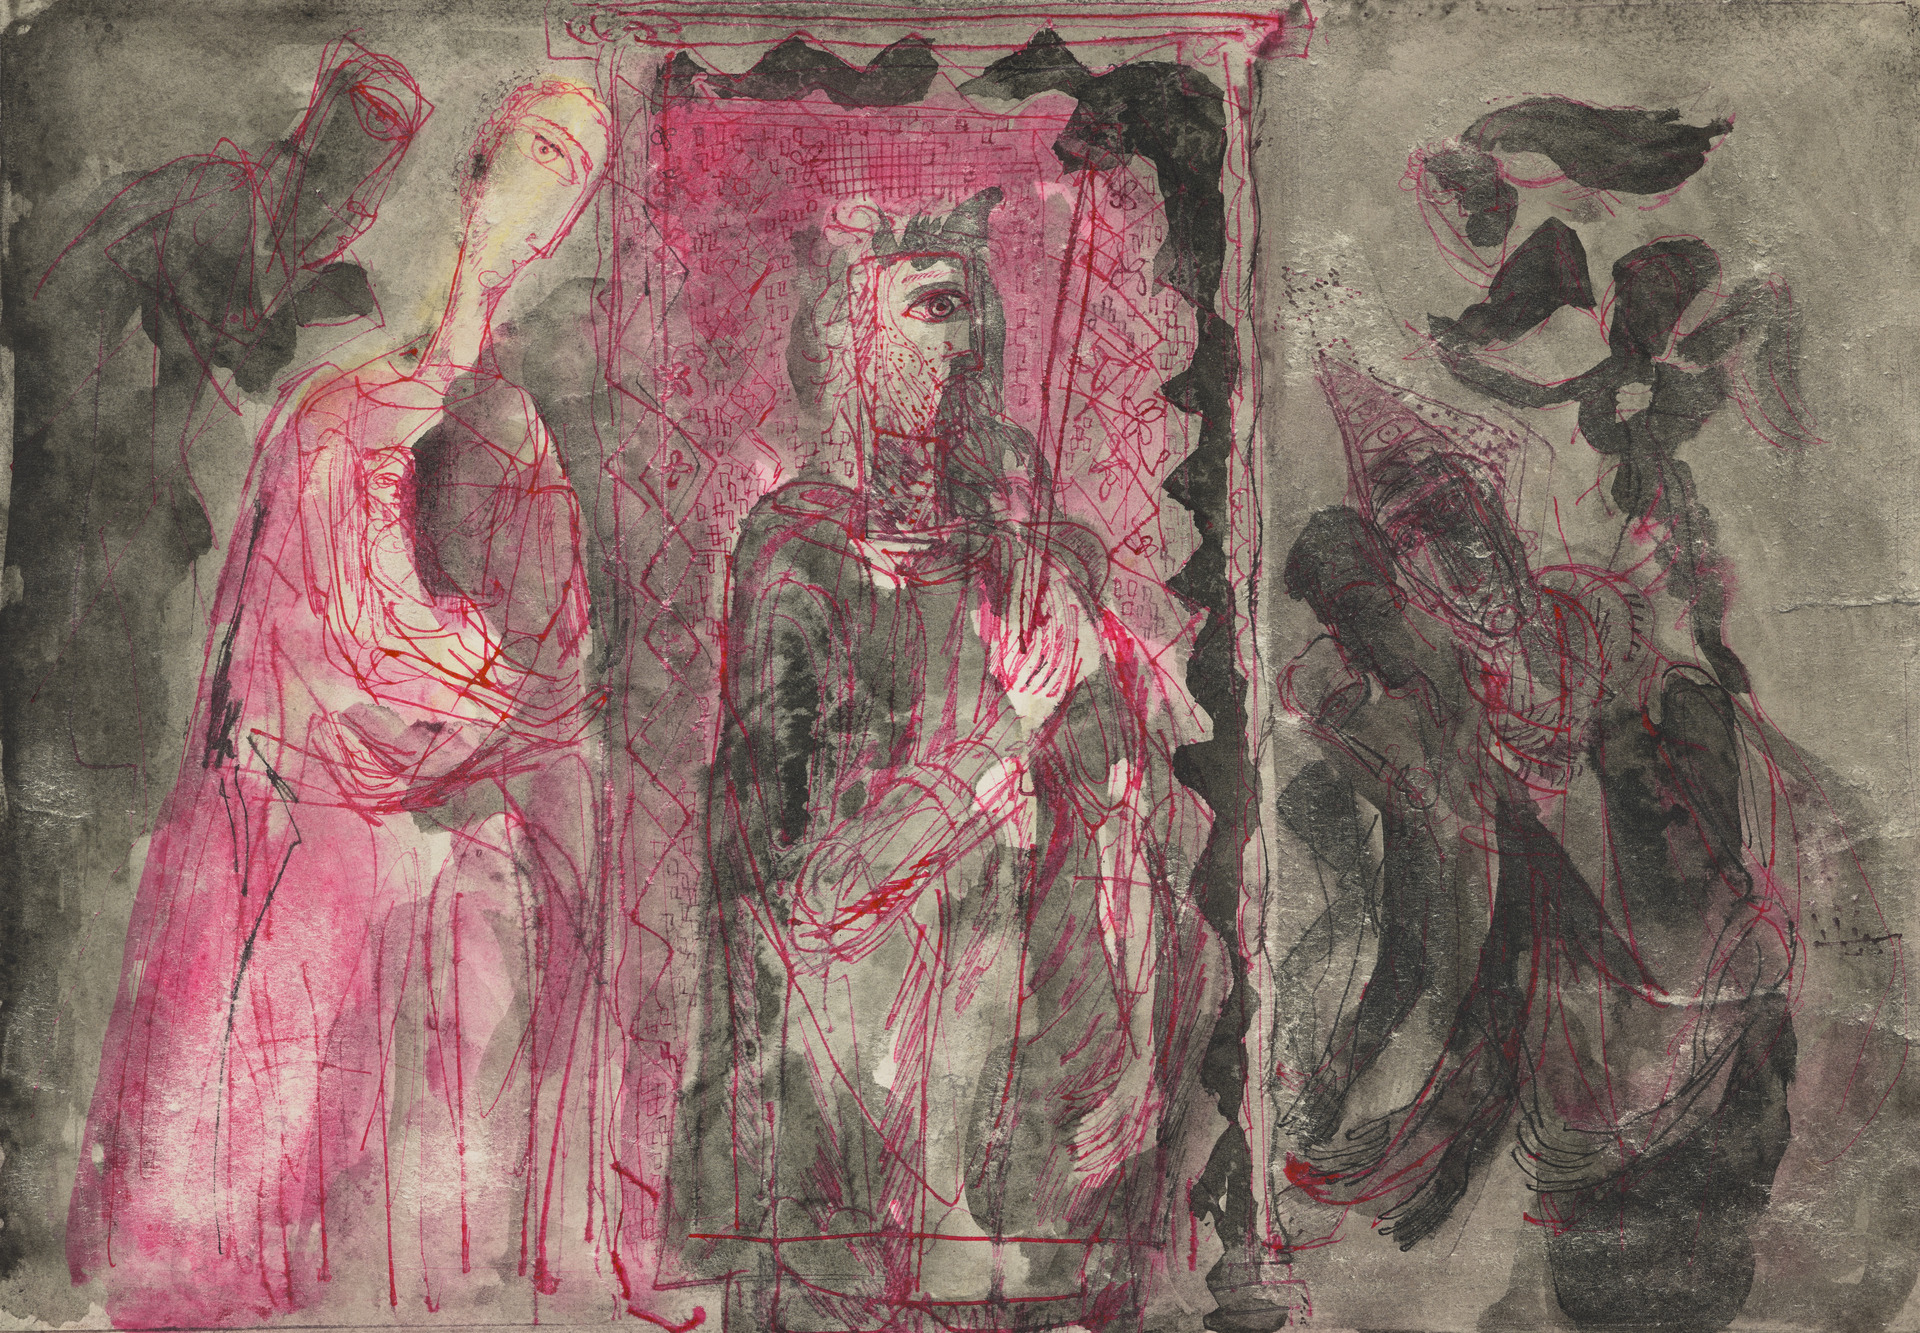 Aleksander Zyw, Untitled [Z 392], 1950-51. Watercolor, pen, colored ink and ink wash on paper. © The Estate of the Artist.